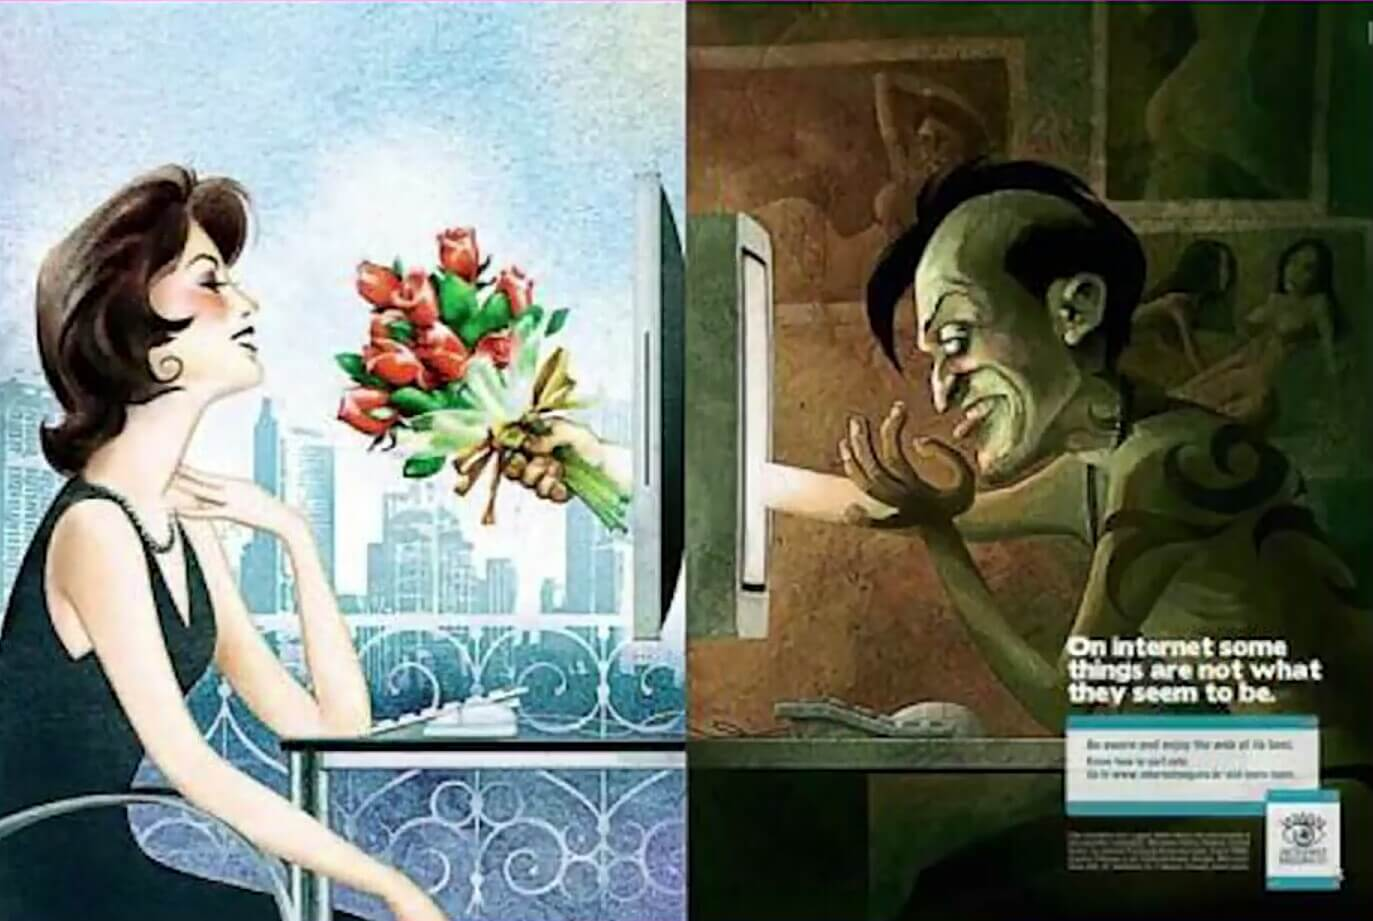 70 Brutally Honest Advertisements Raise Social Issues To Spread Thought-Provoking Messages